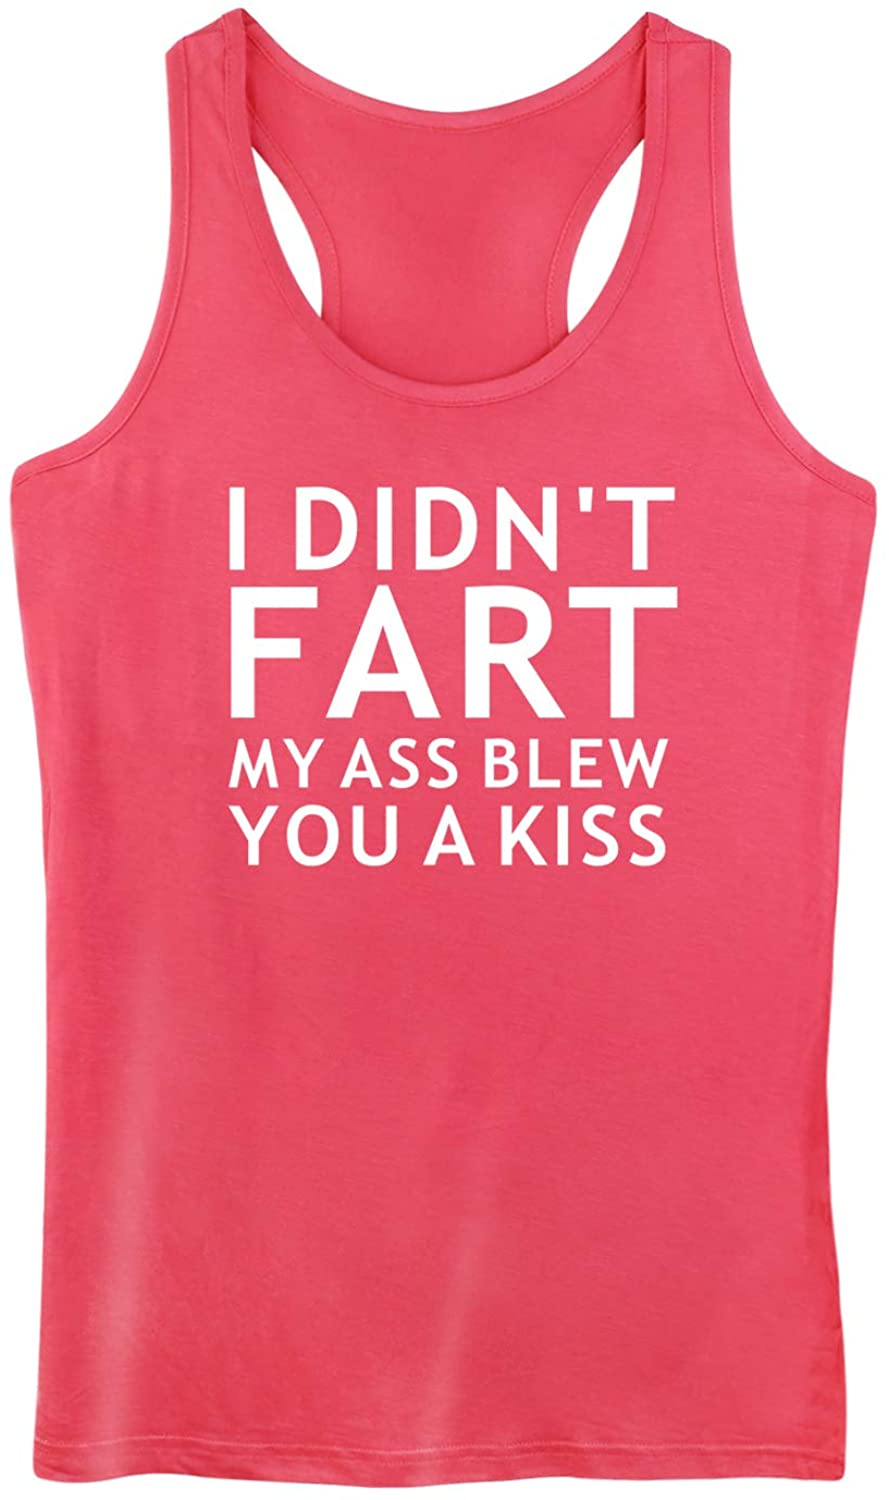 Funny Workout Tank Tops for Women Racerback Burnout Fitness Gym Sleeveless Shirts I Dont Fart My Ass Blew You A Kiss